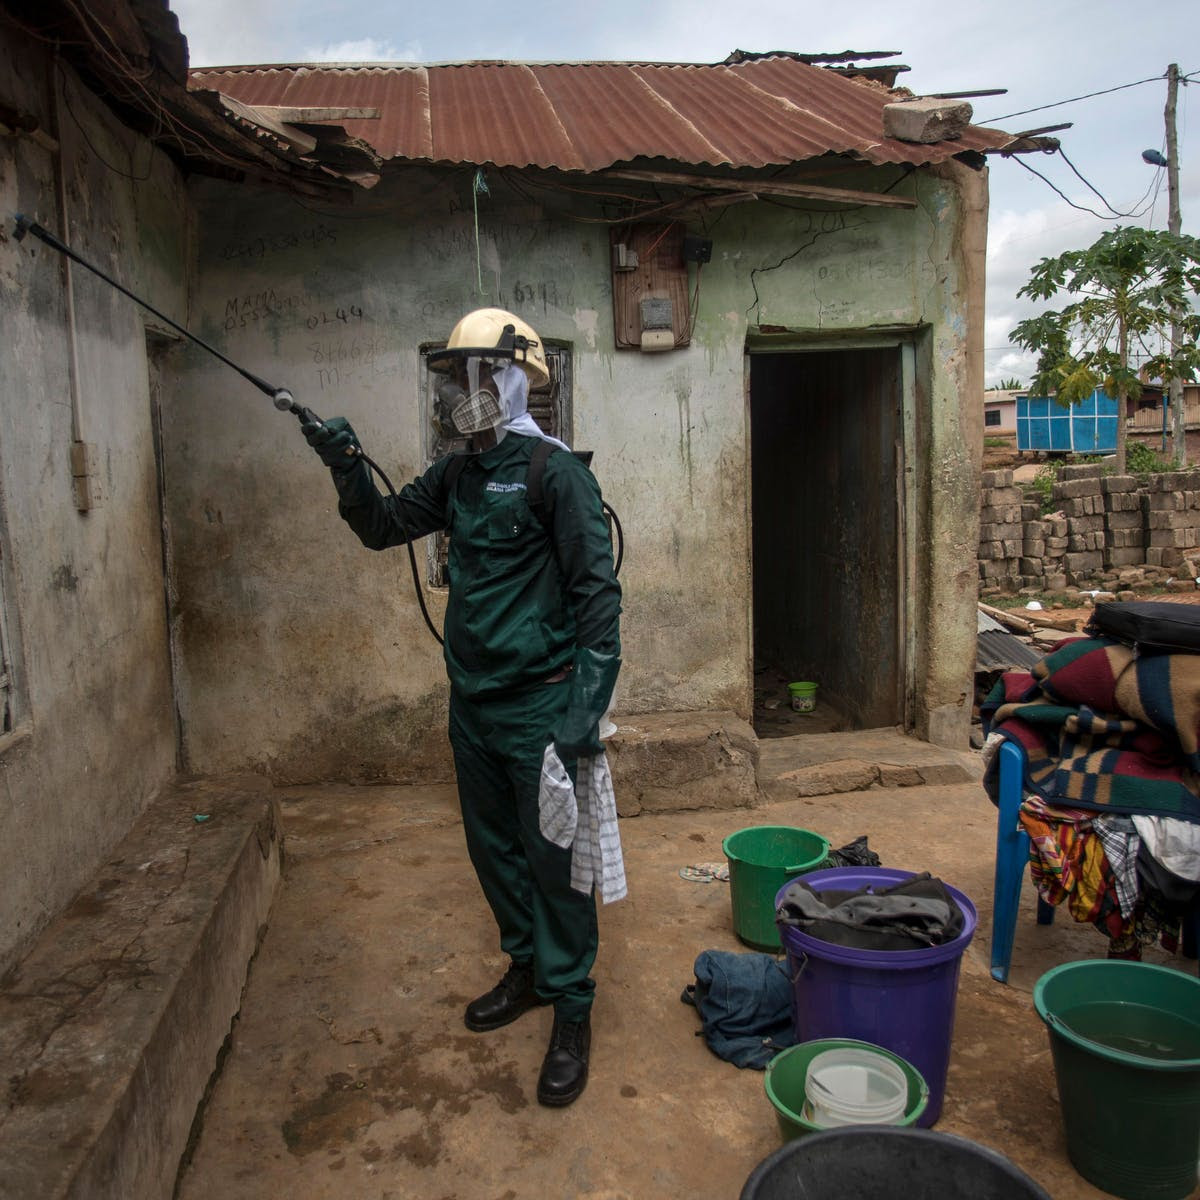 Ending malaria in Africa needs to focus on poverty: quick fixes won't cut it